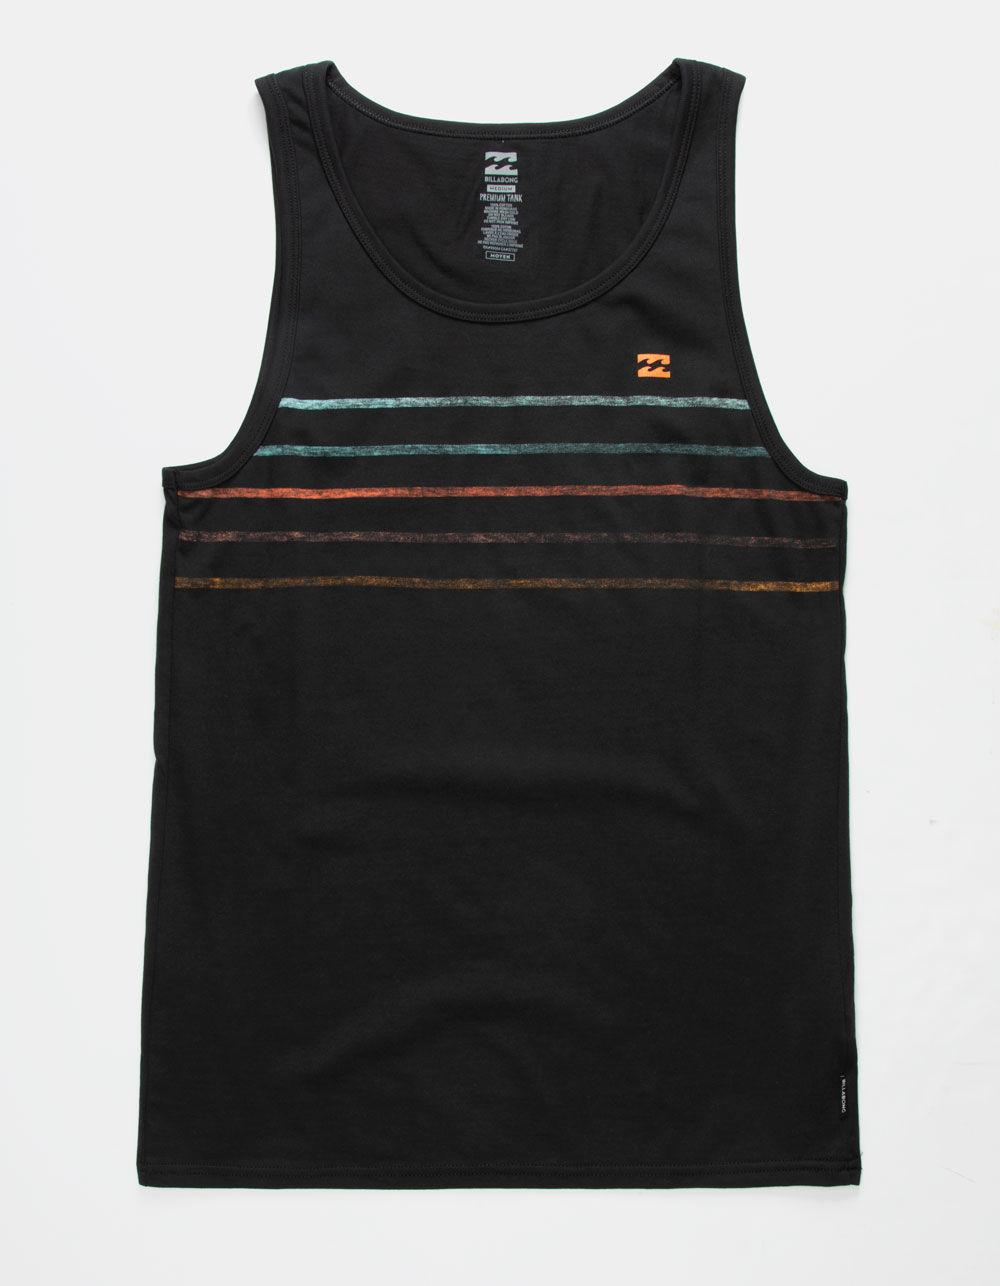 813d24ace63179 Lyst - Billabong Spinner Mens Tank Top in Black for Men